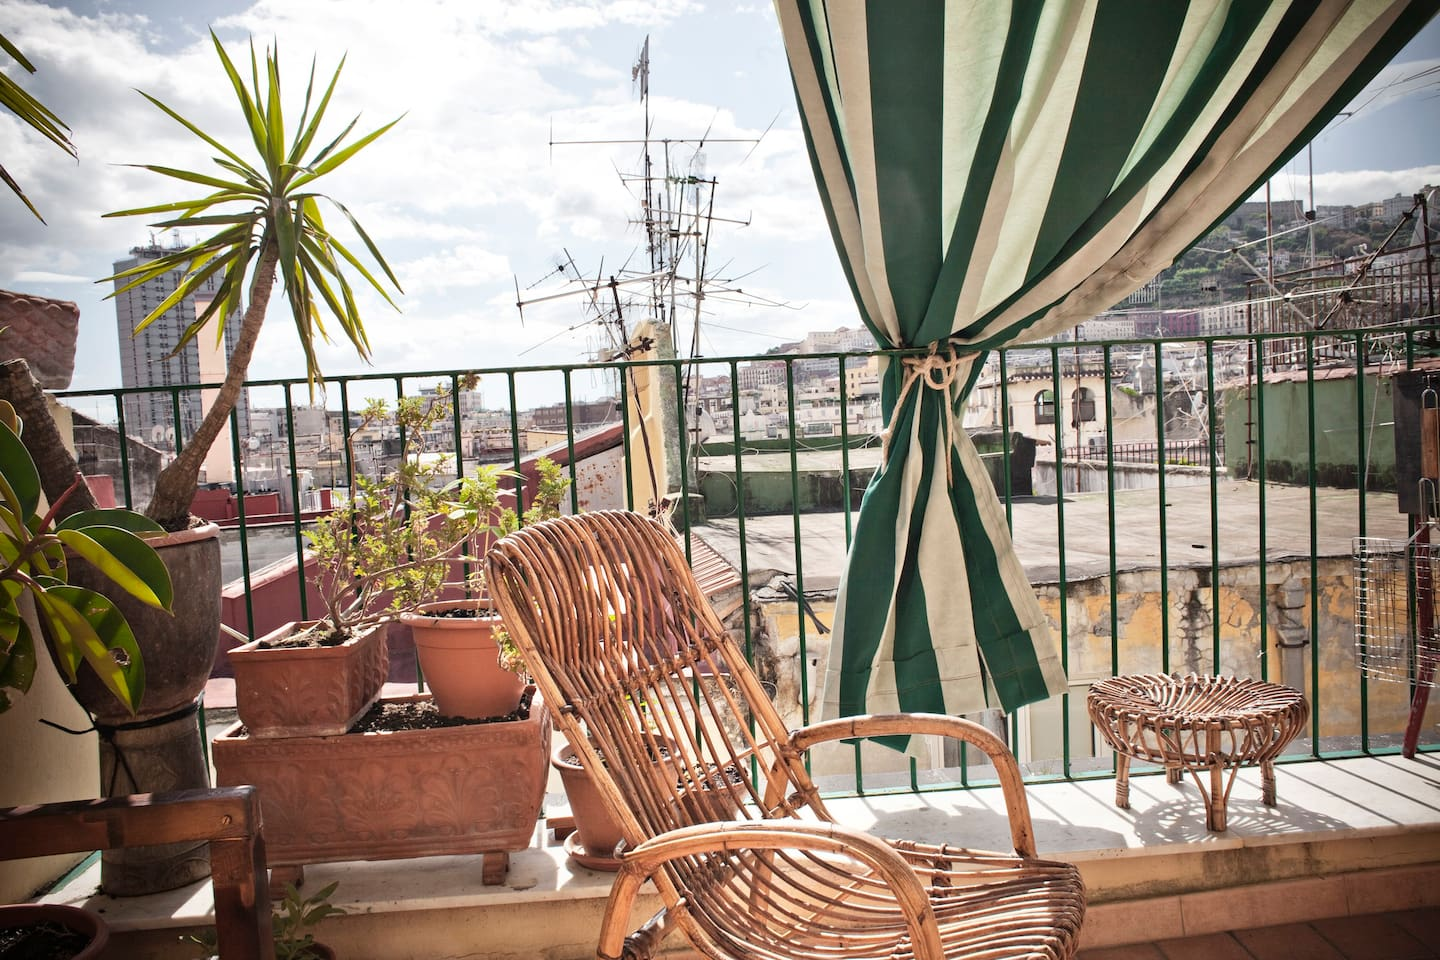 Set your watch to a different timing concept. Relax on the terrace and enjoy silence, an amazing view and south italy's  lifestyle